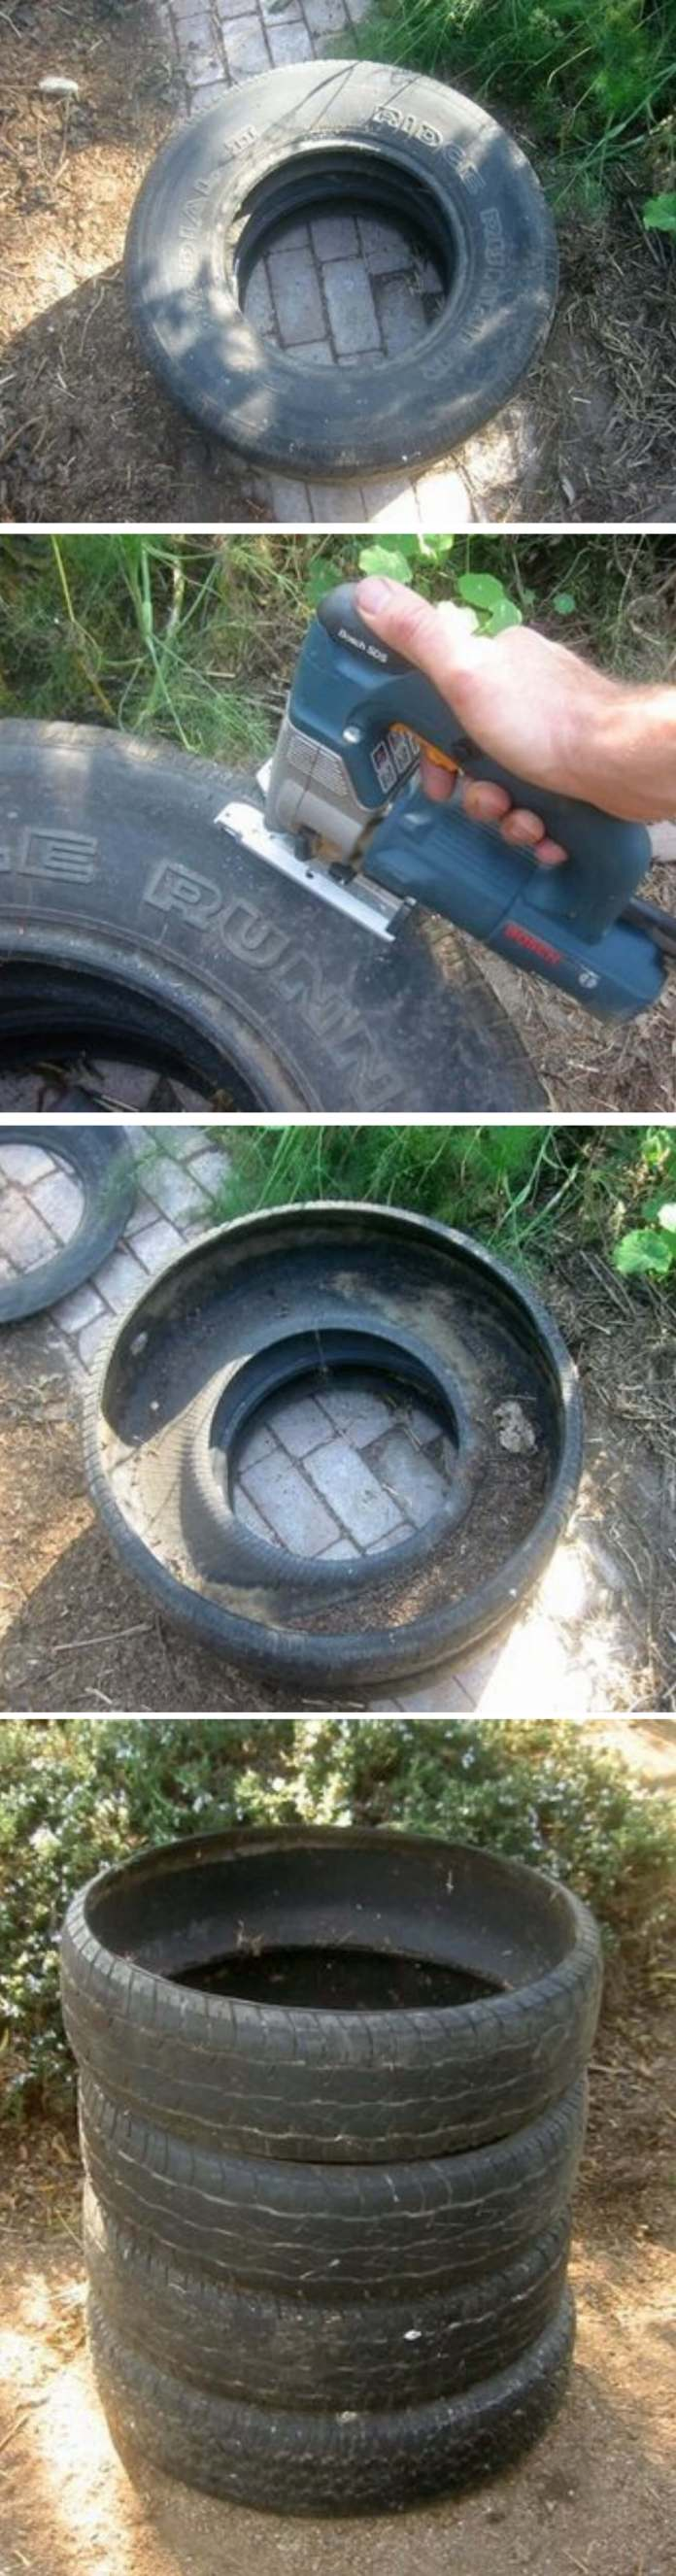 Used Tire Compost Bin | Easy Compost Bins You Can DIY On Very Low Budget - FarmFoodFamily.com